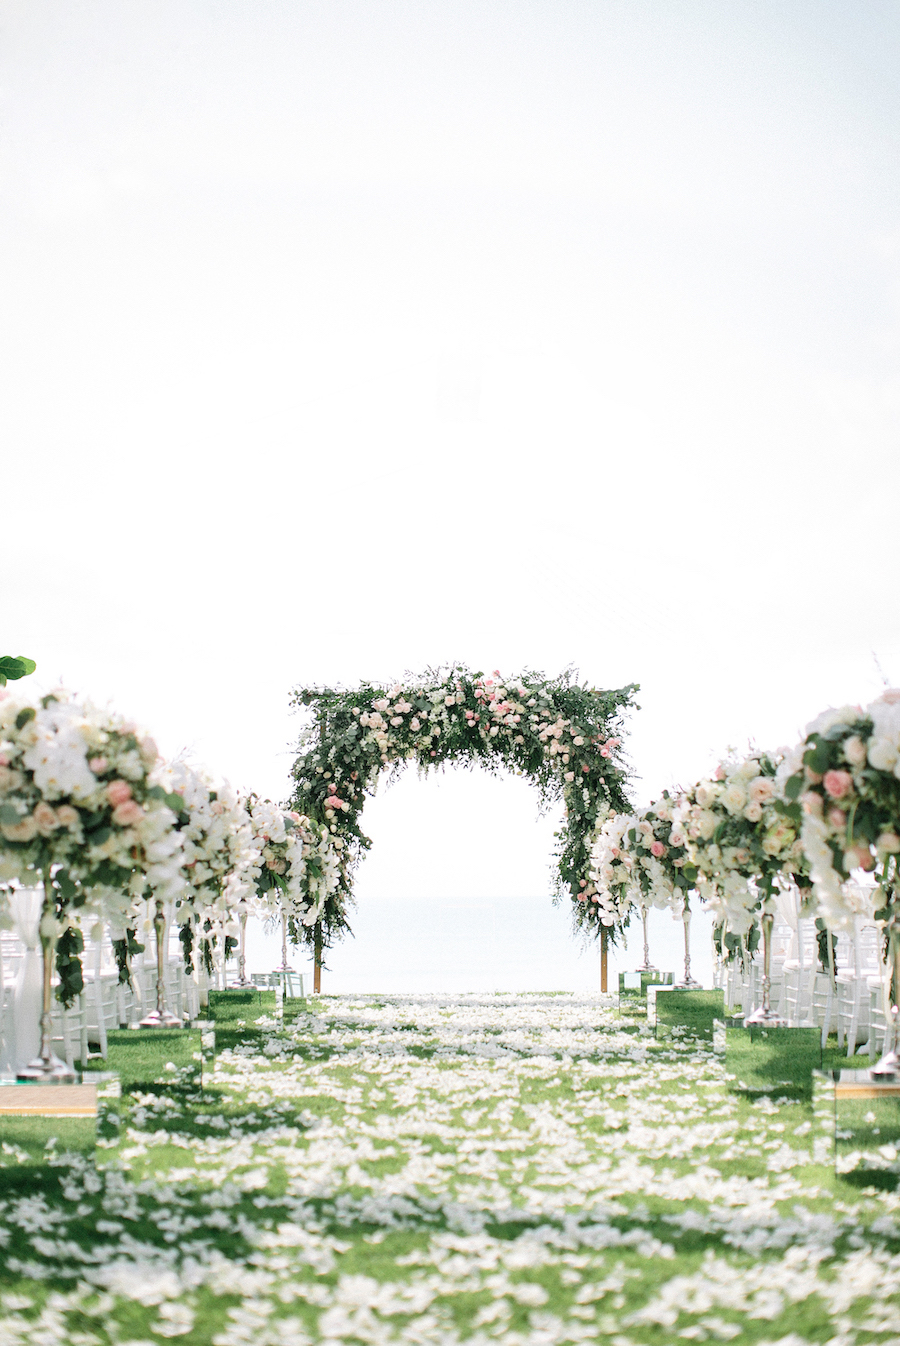 saya-photography-blush-wedding-romantic-sophisticated-beach-villa-satis-phuket-33.jpg